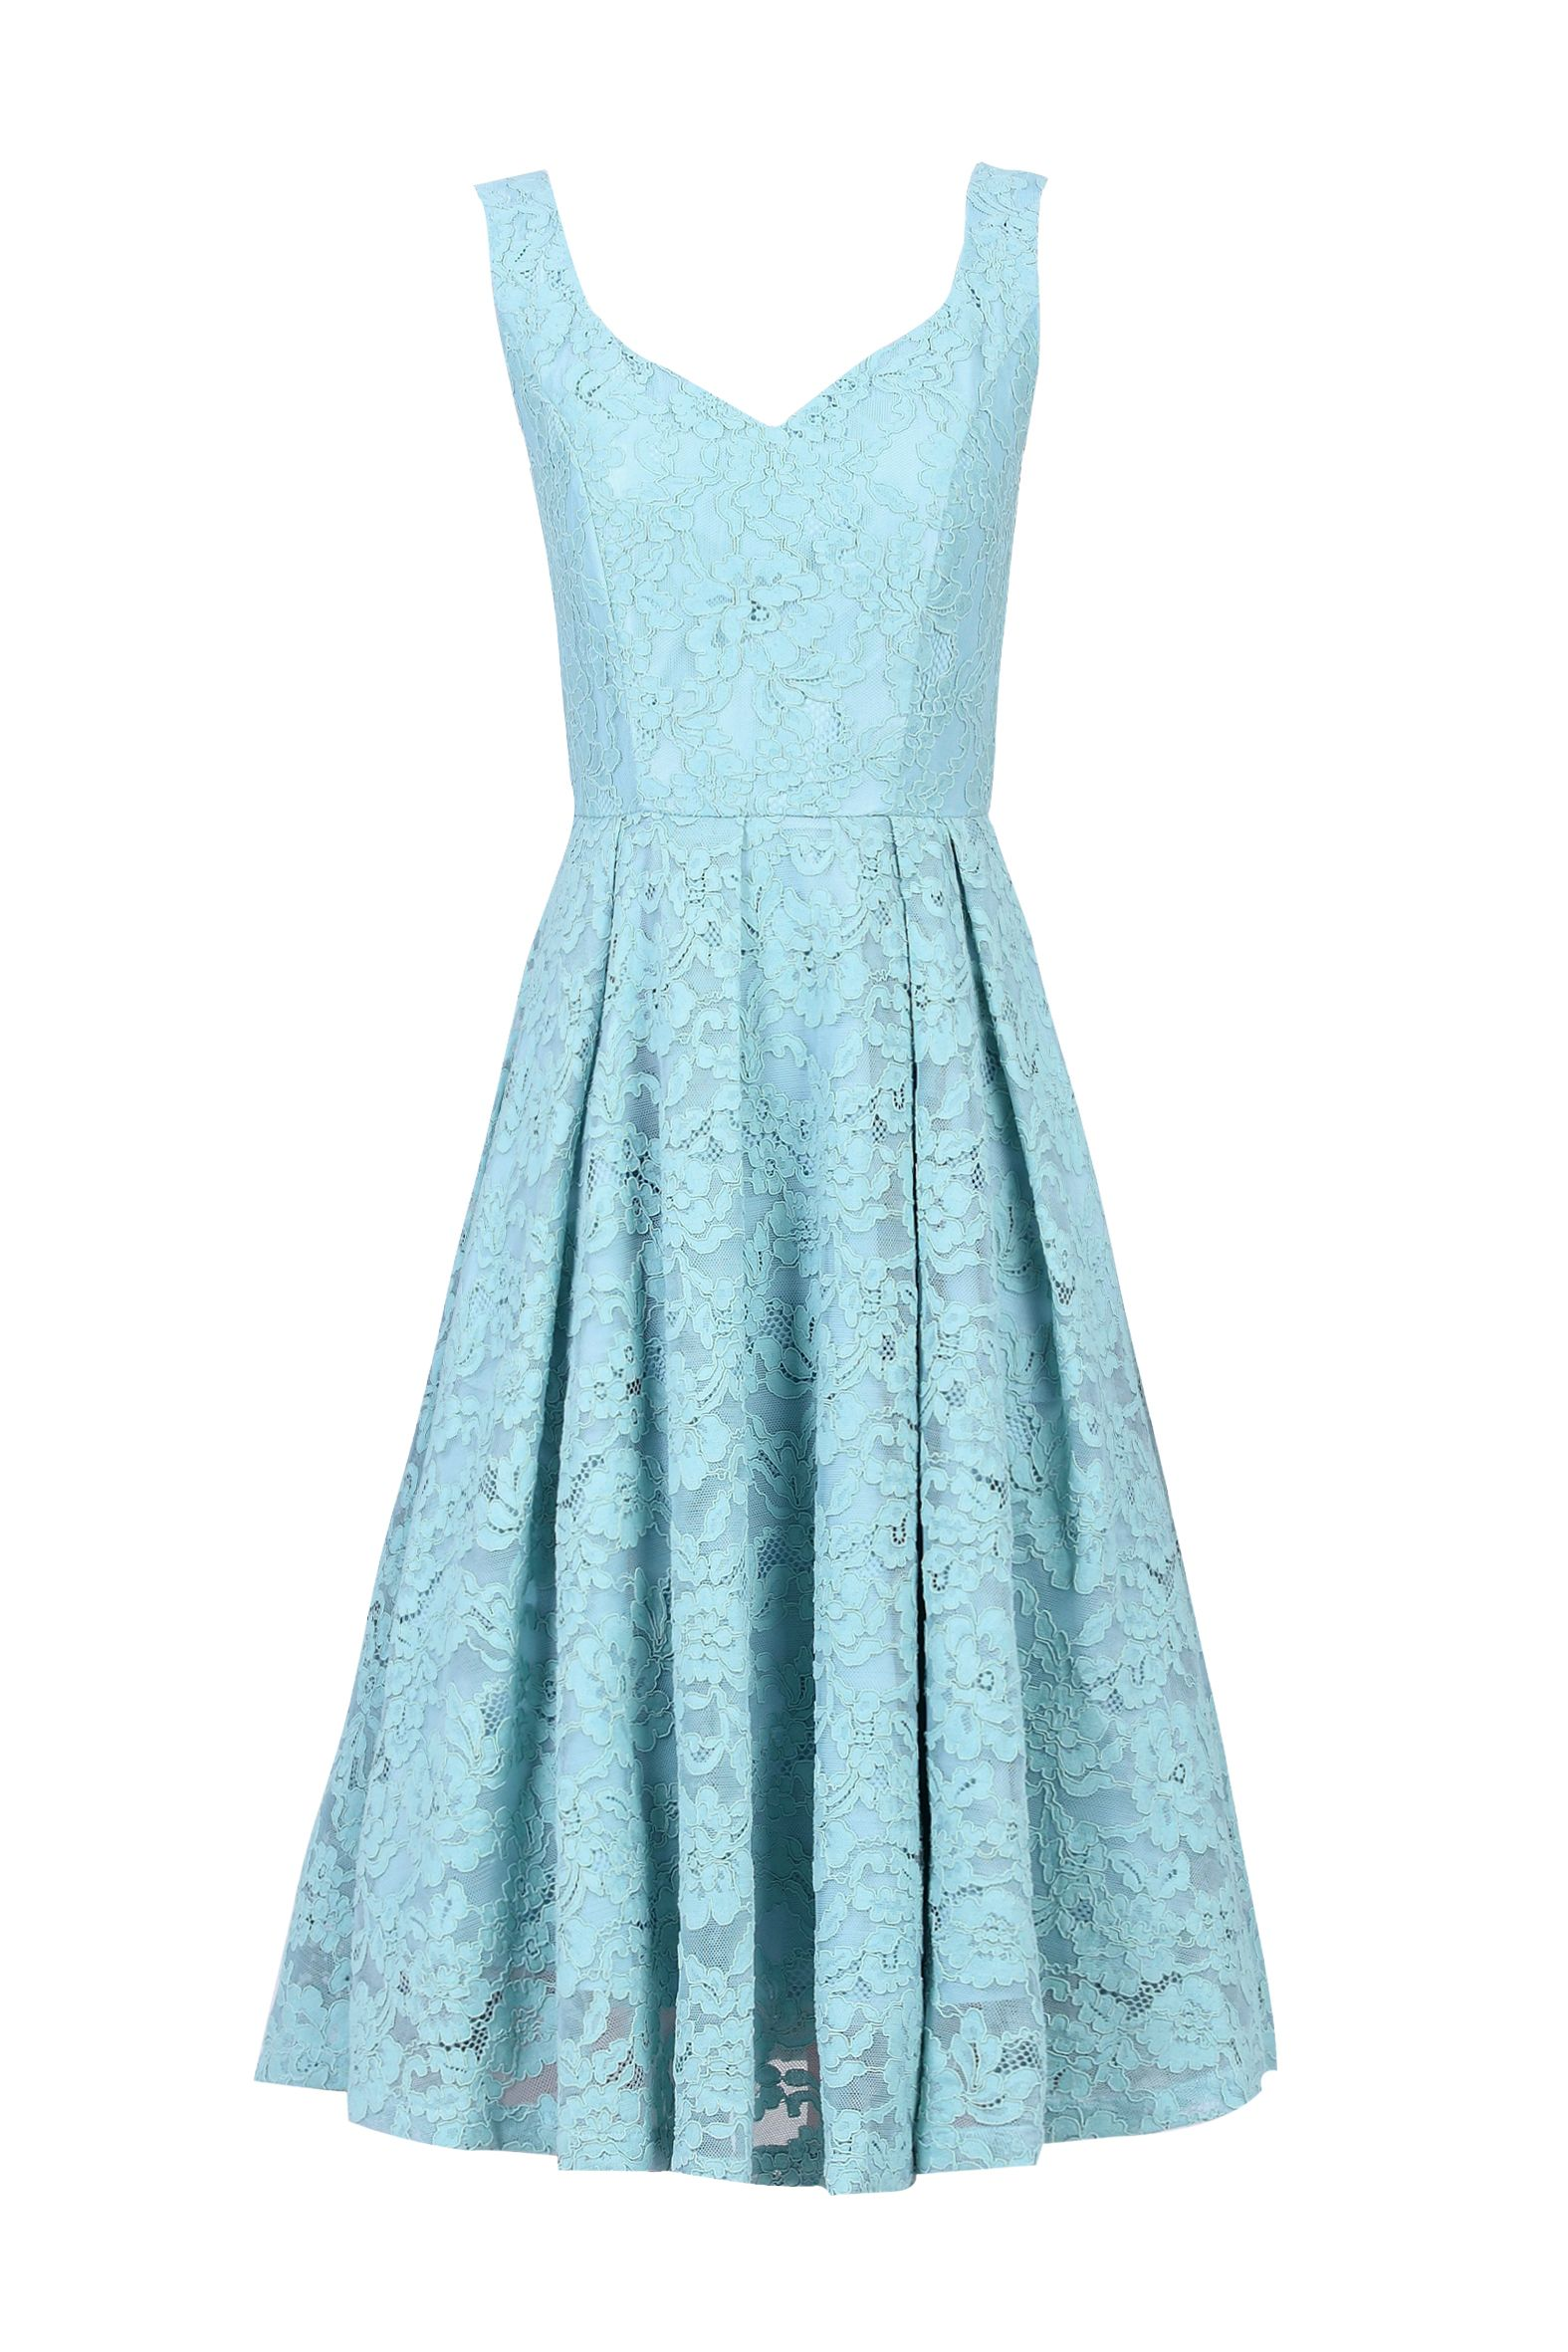 Jolie Moi Pleated Lace Prom Dress, Blue